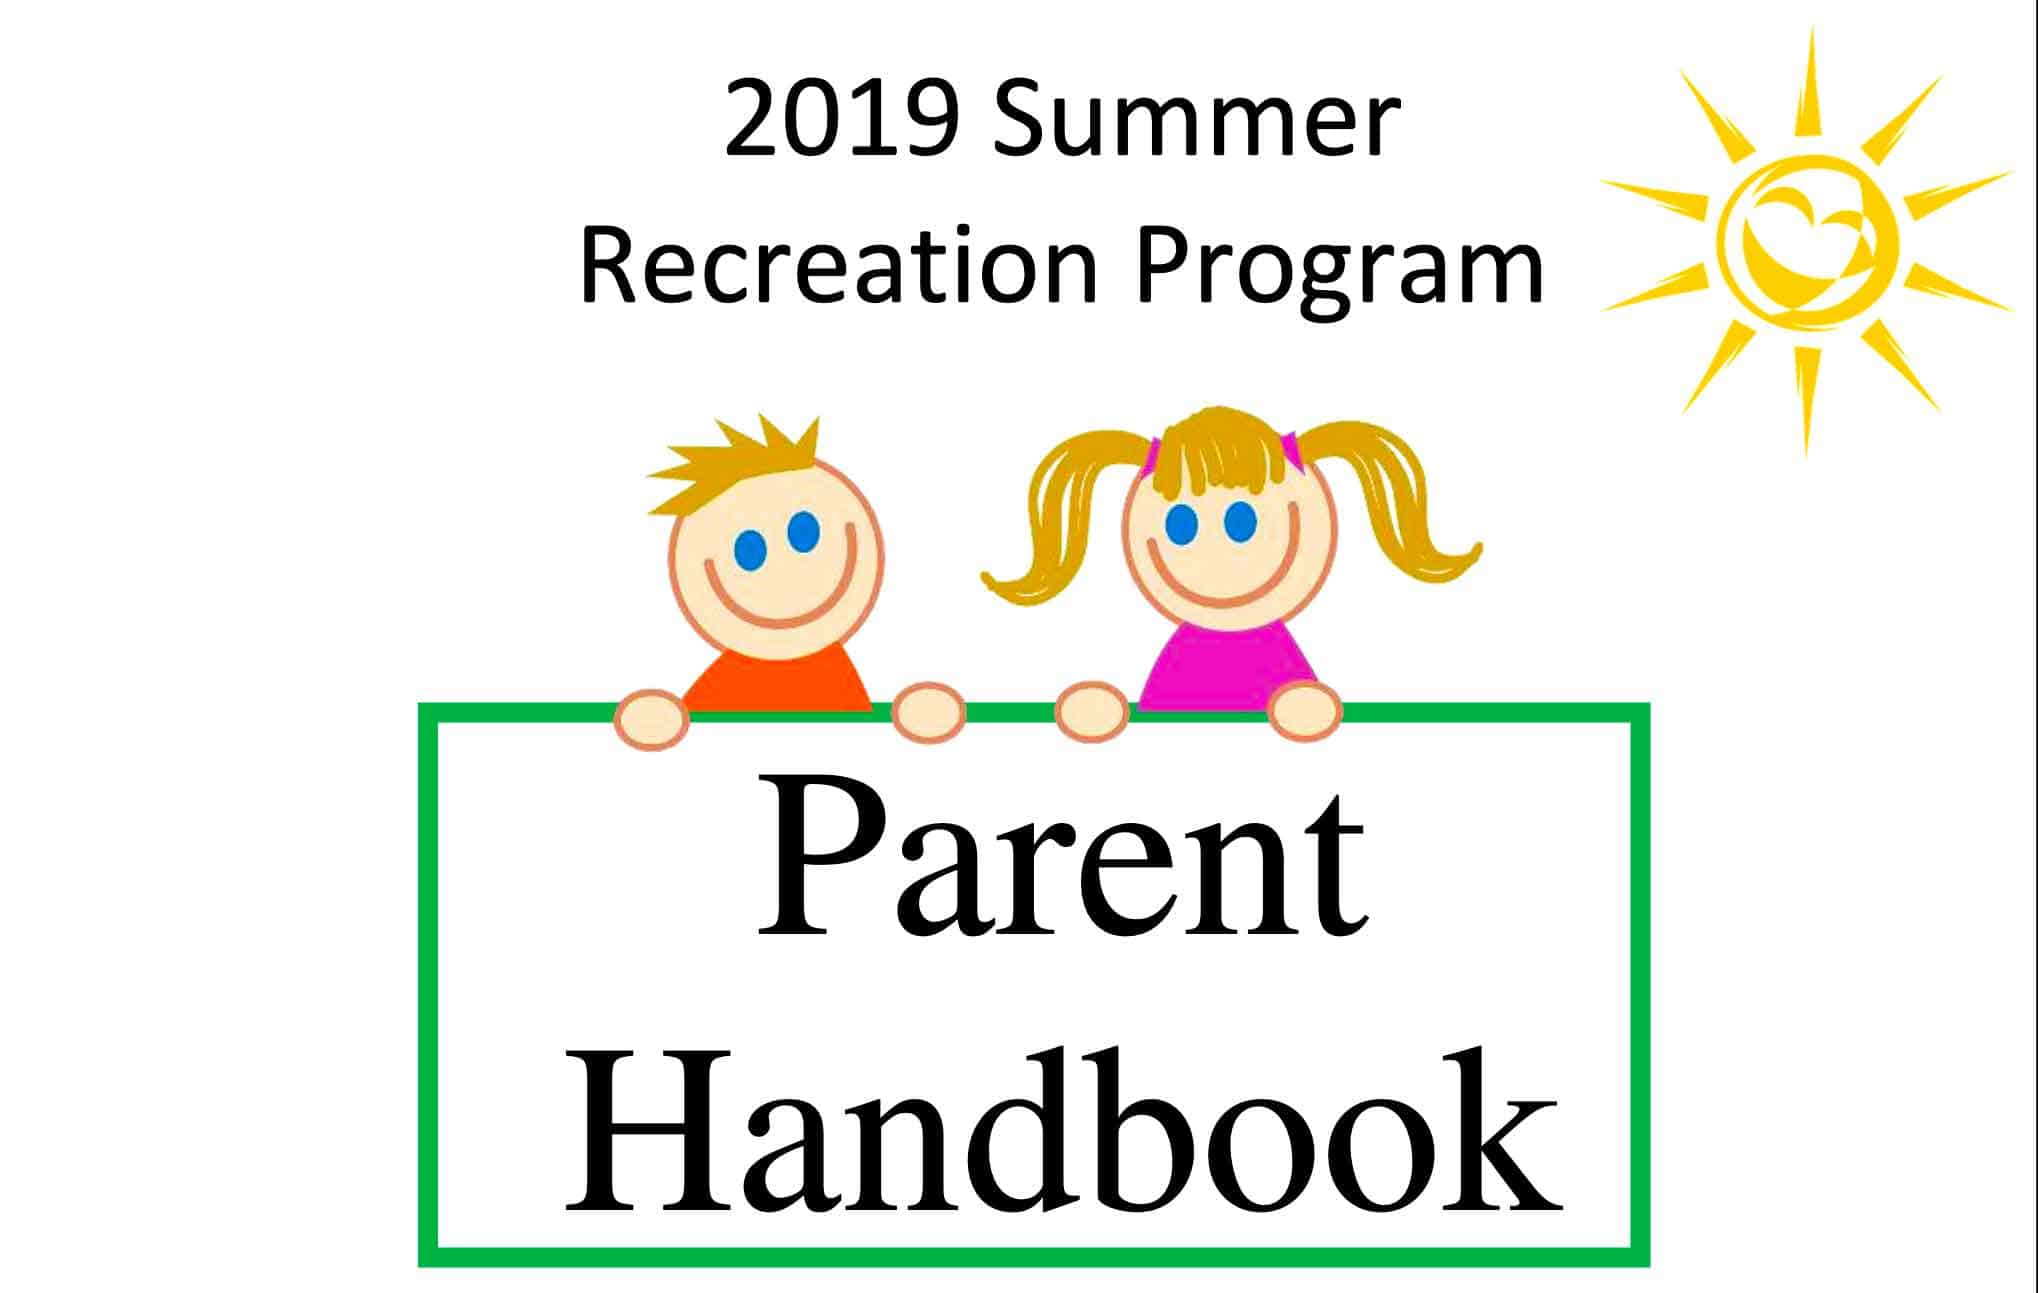 2019 Summer Recreation Handbook